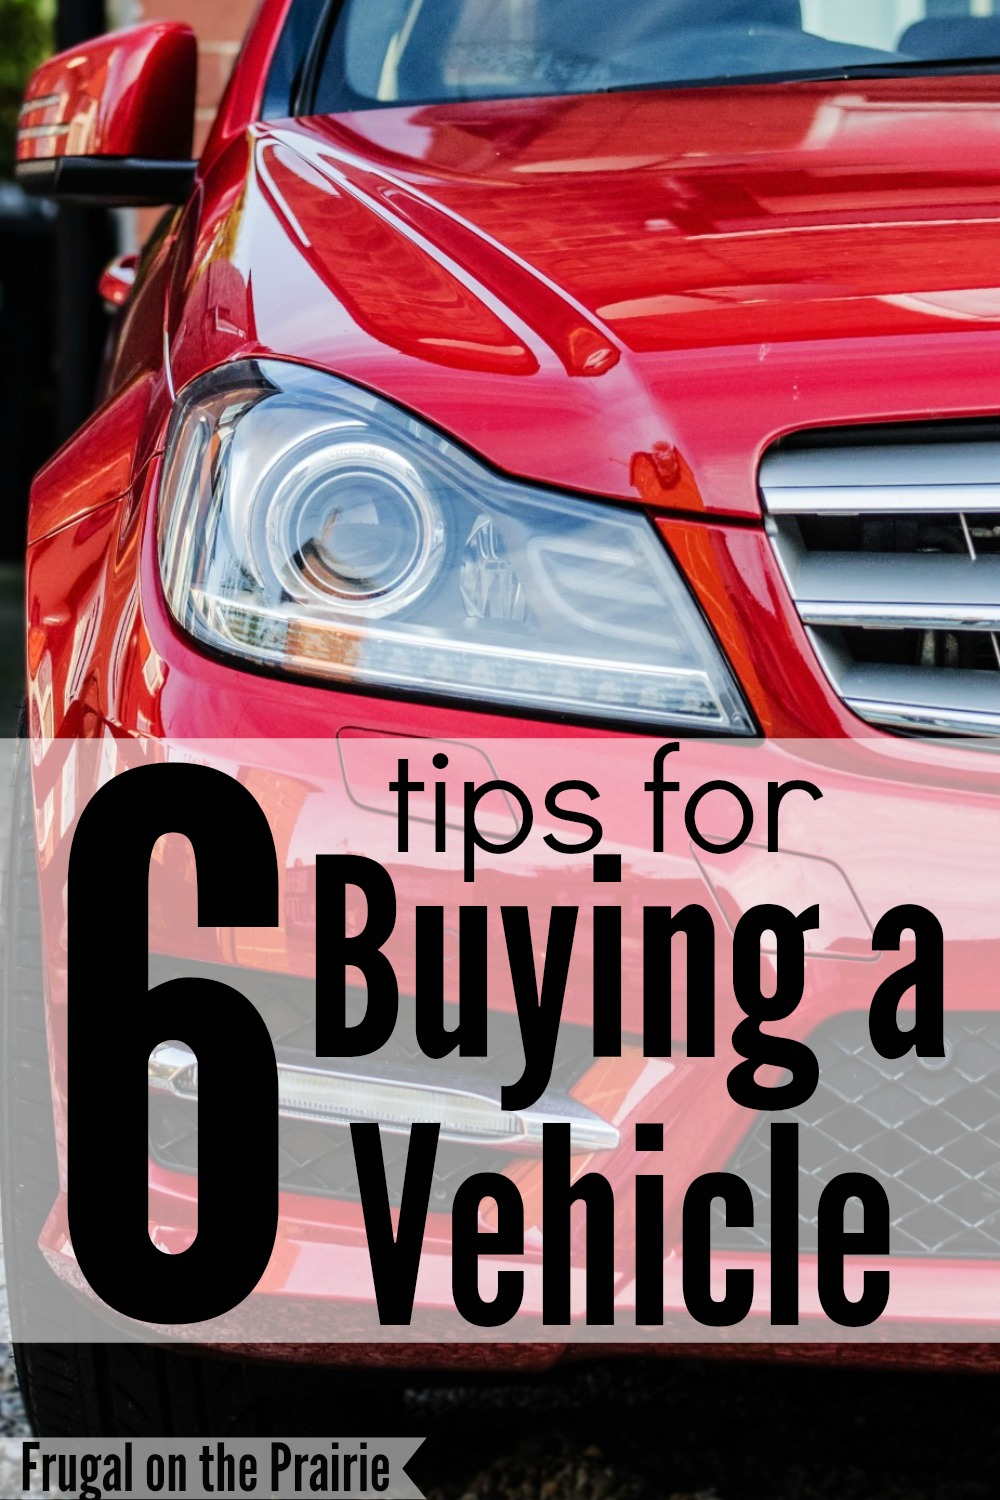 Buying a new or used vehicle is stressful and time consuming! Check out my 6 tips for buying a car to save money and make the process more enjoyable.